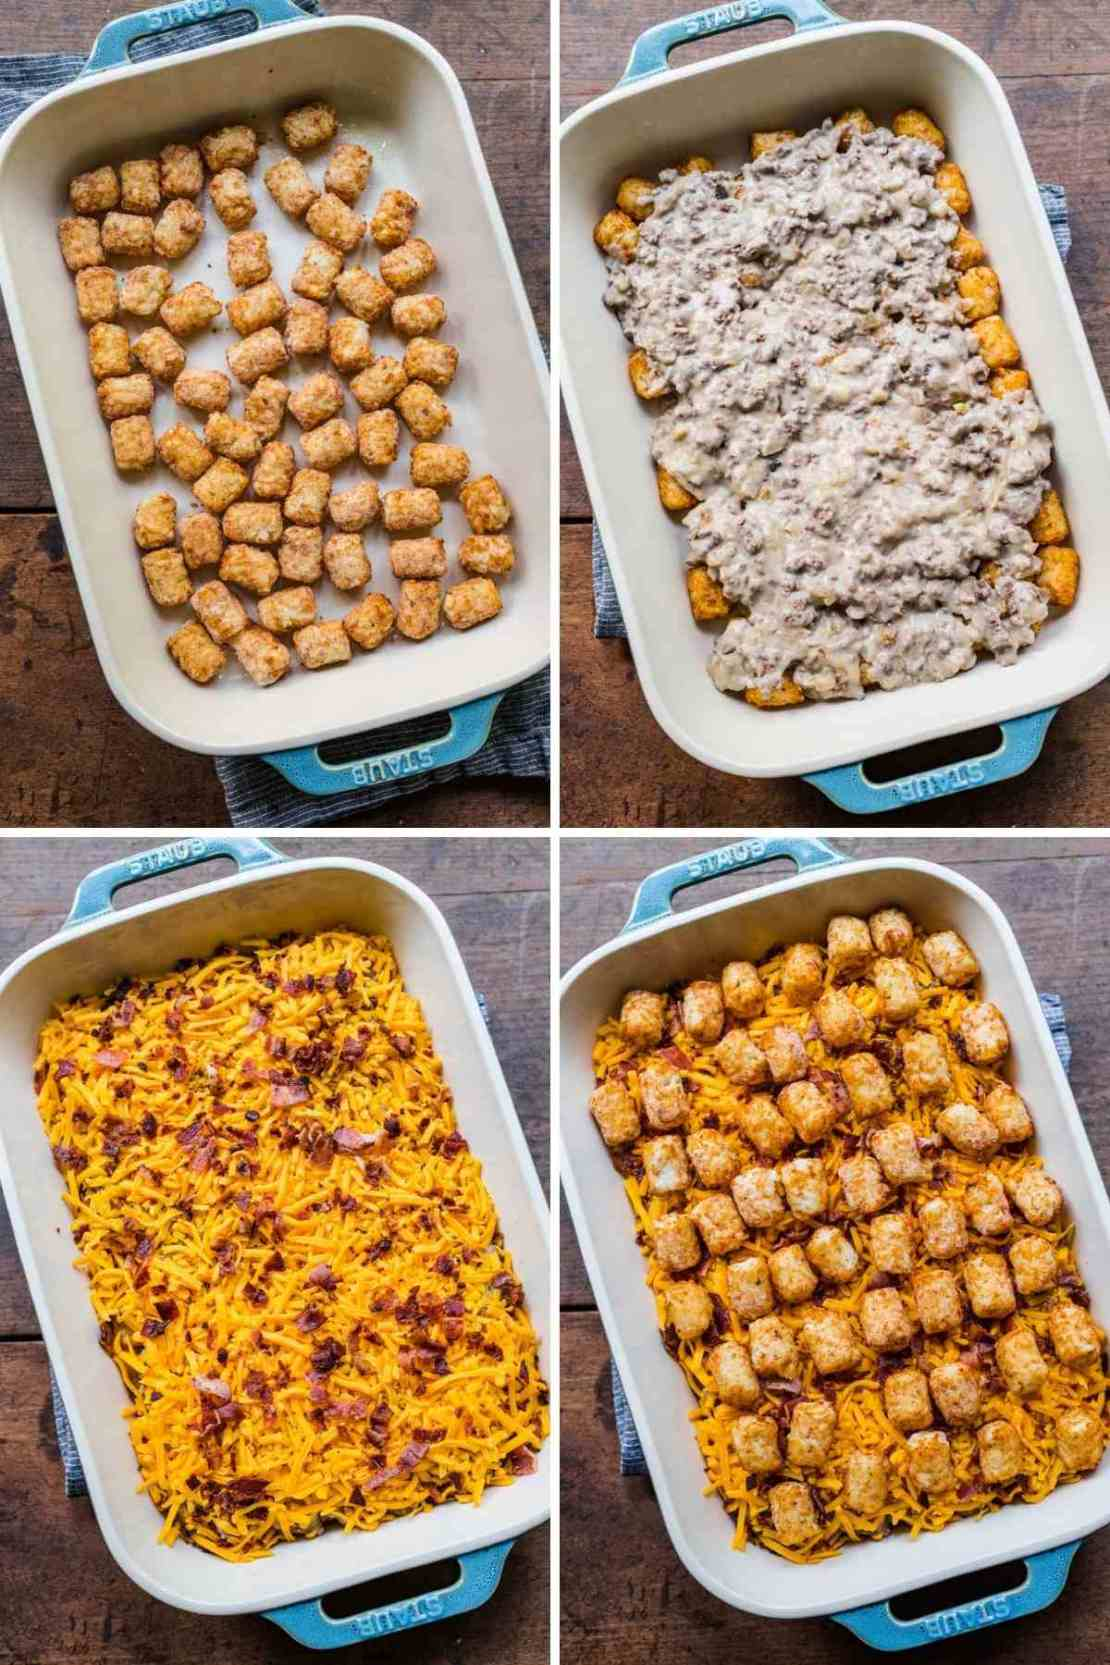 Collage of Bacon Cheeseburger Tater Tot Casserole assembly